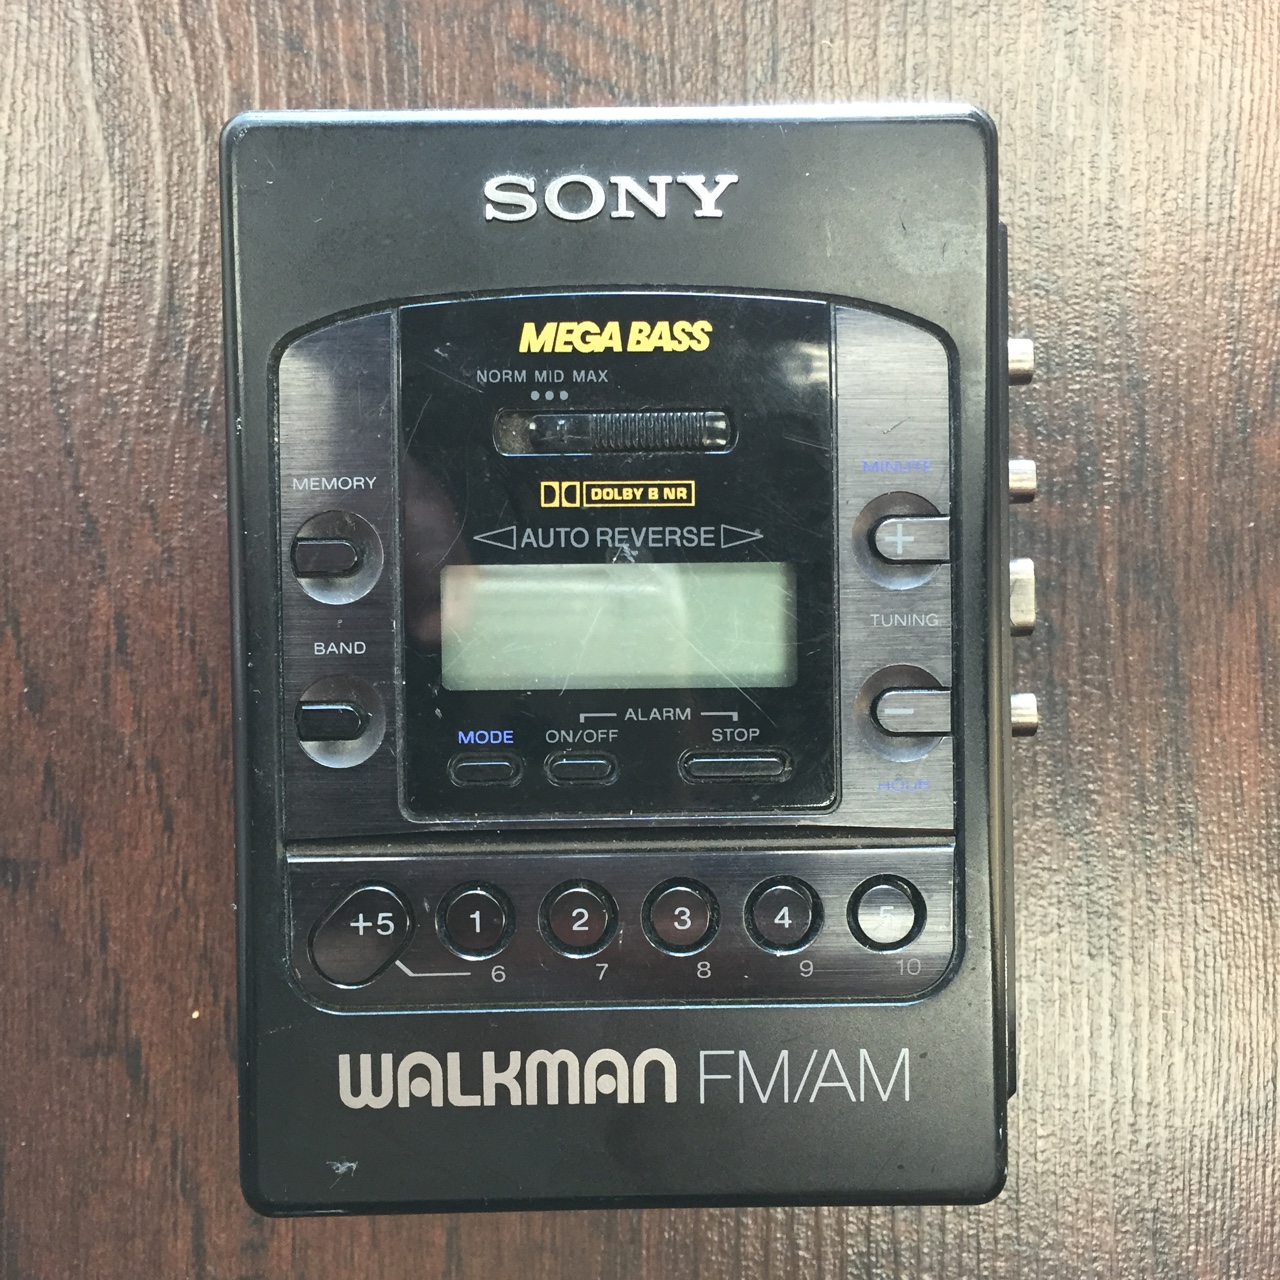 Sony Mega bass Walkman cassette tape player & FM/AM